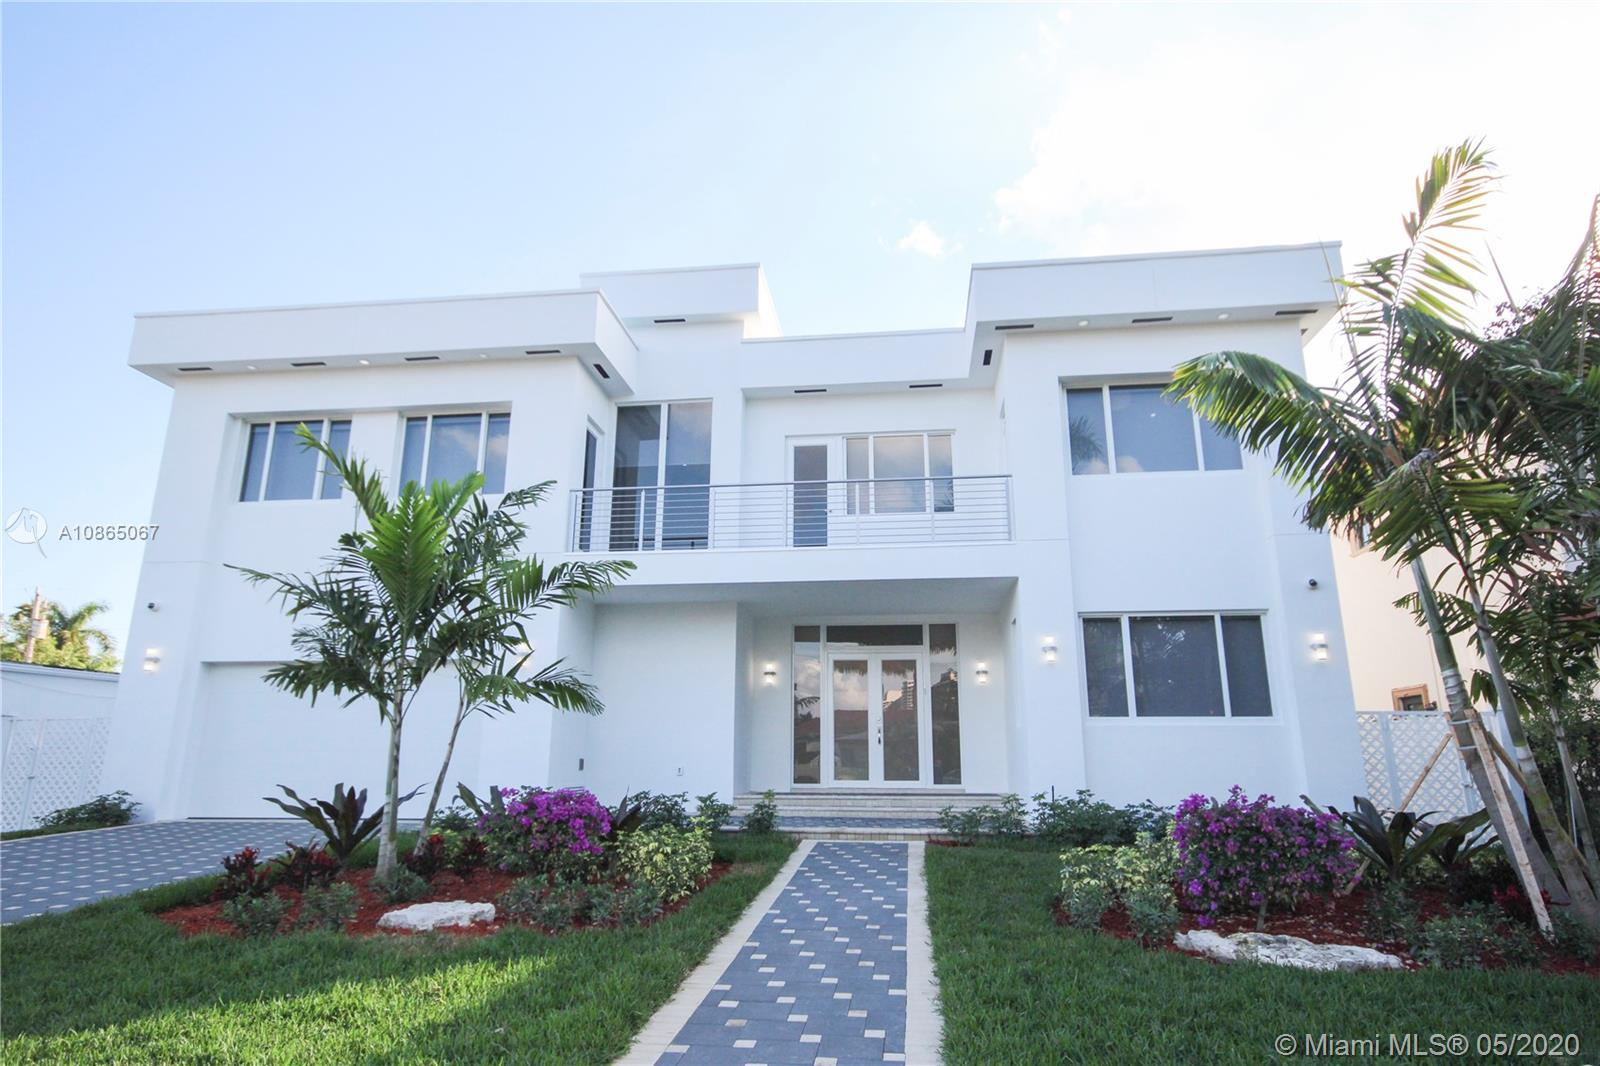 Details for 362 189th St, Sunny Isles Beach, FL 33160